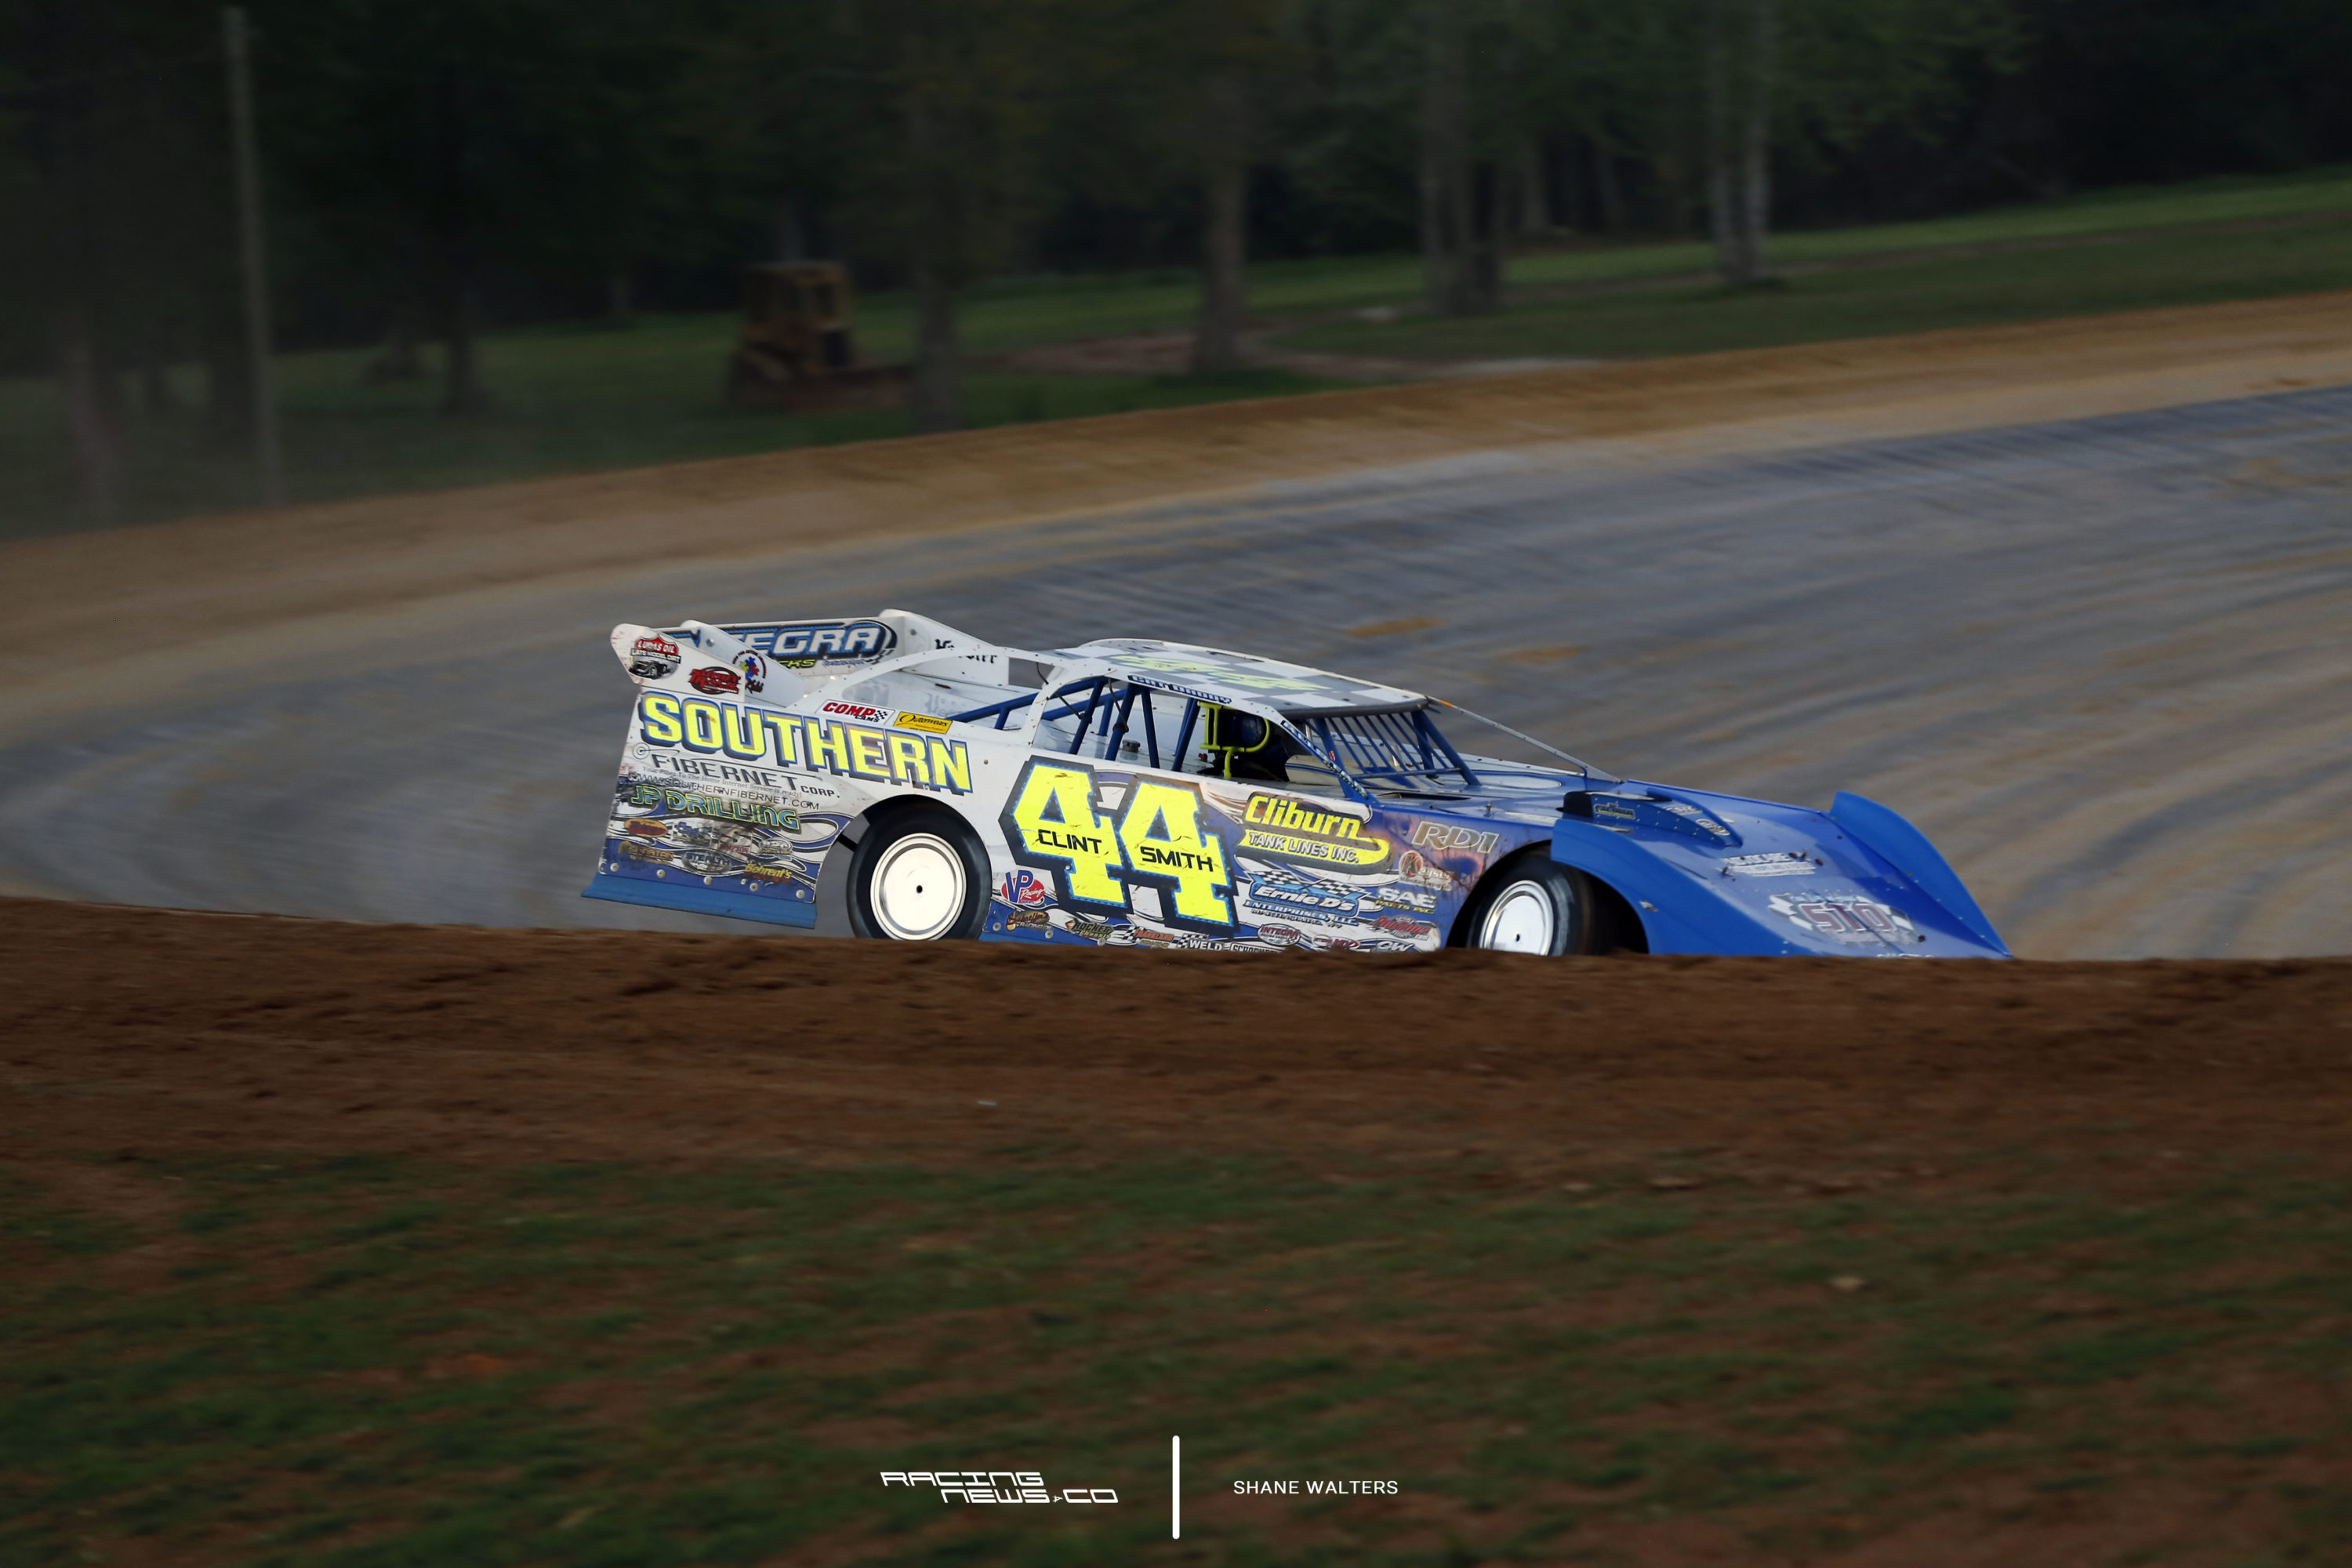 Clint Smith Dirt Late Model 9930